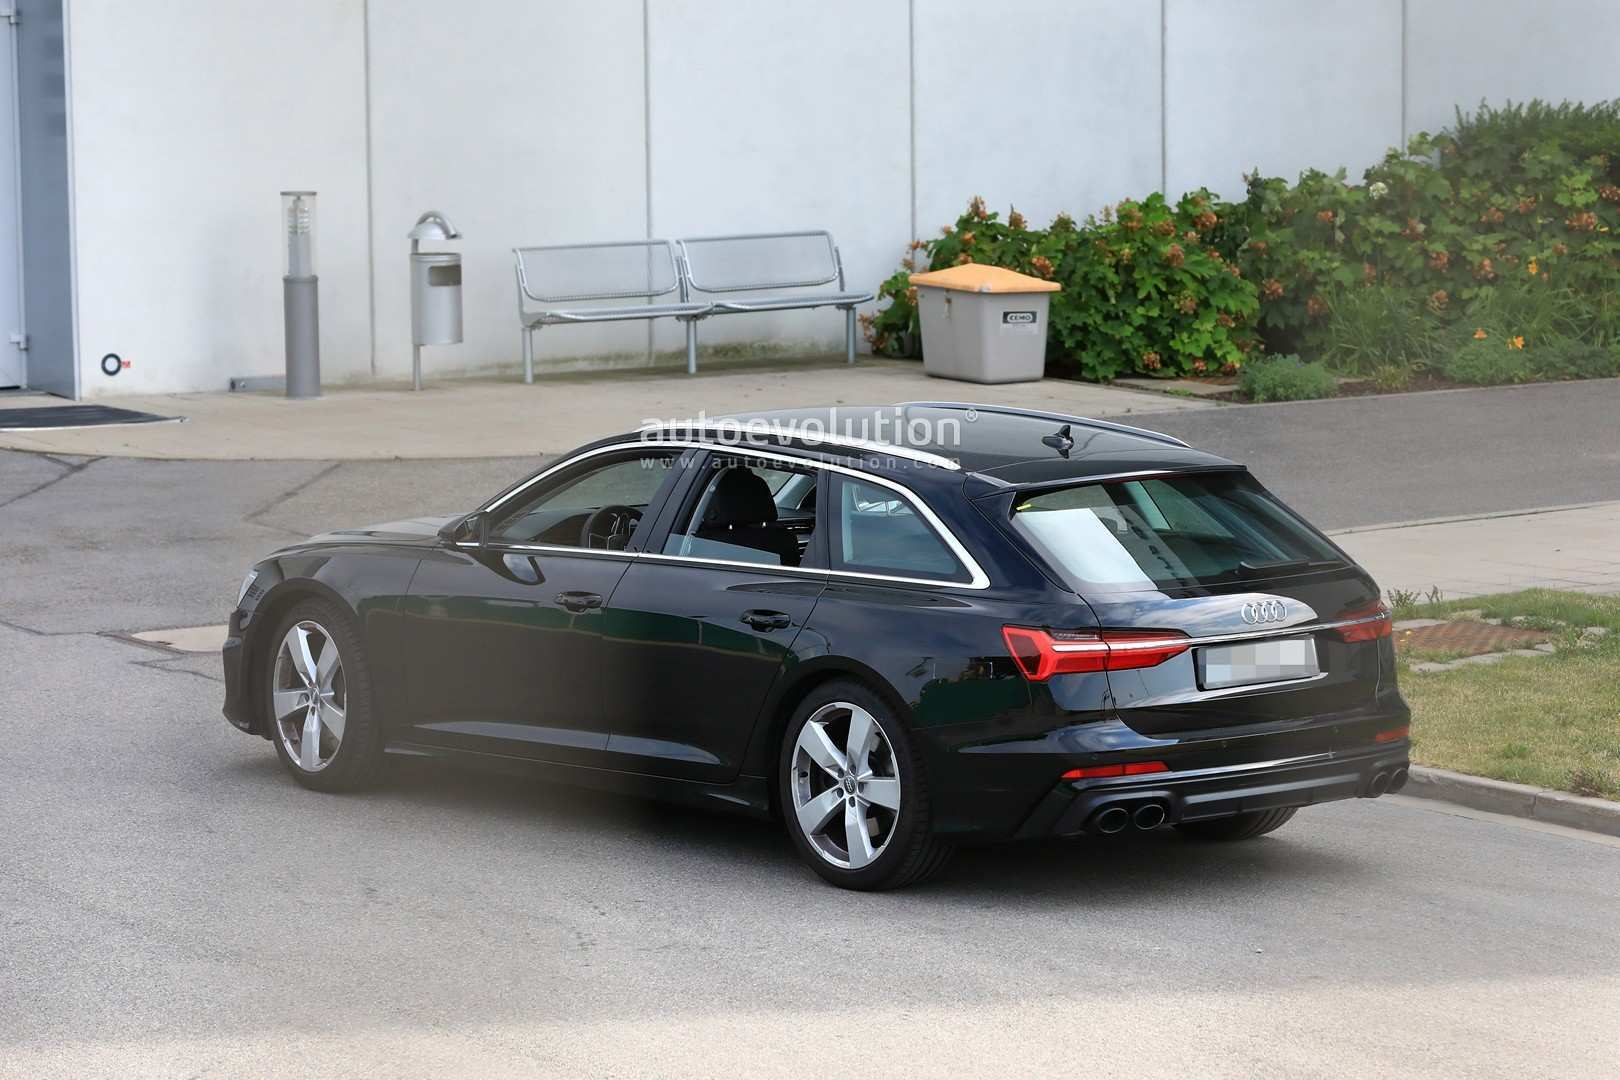 39 Gallery of 2020 Audi A6 Wagon Exterior and Interior with 2020 Audi A6 Wagon